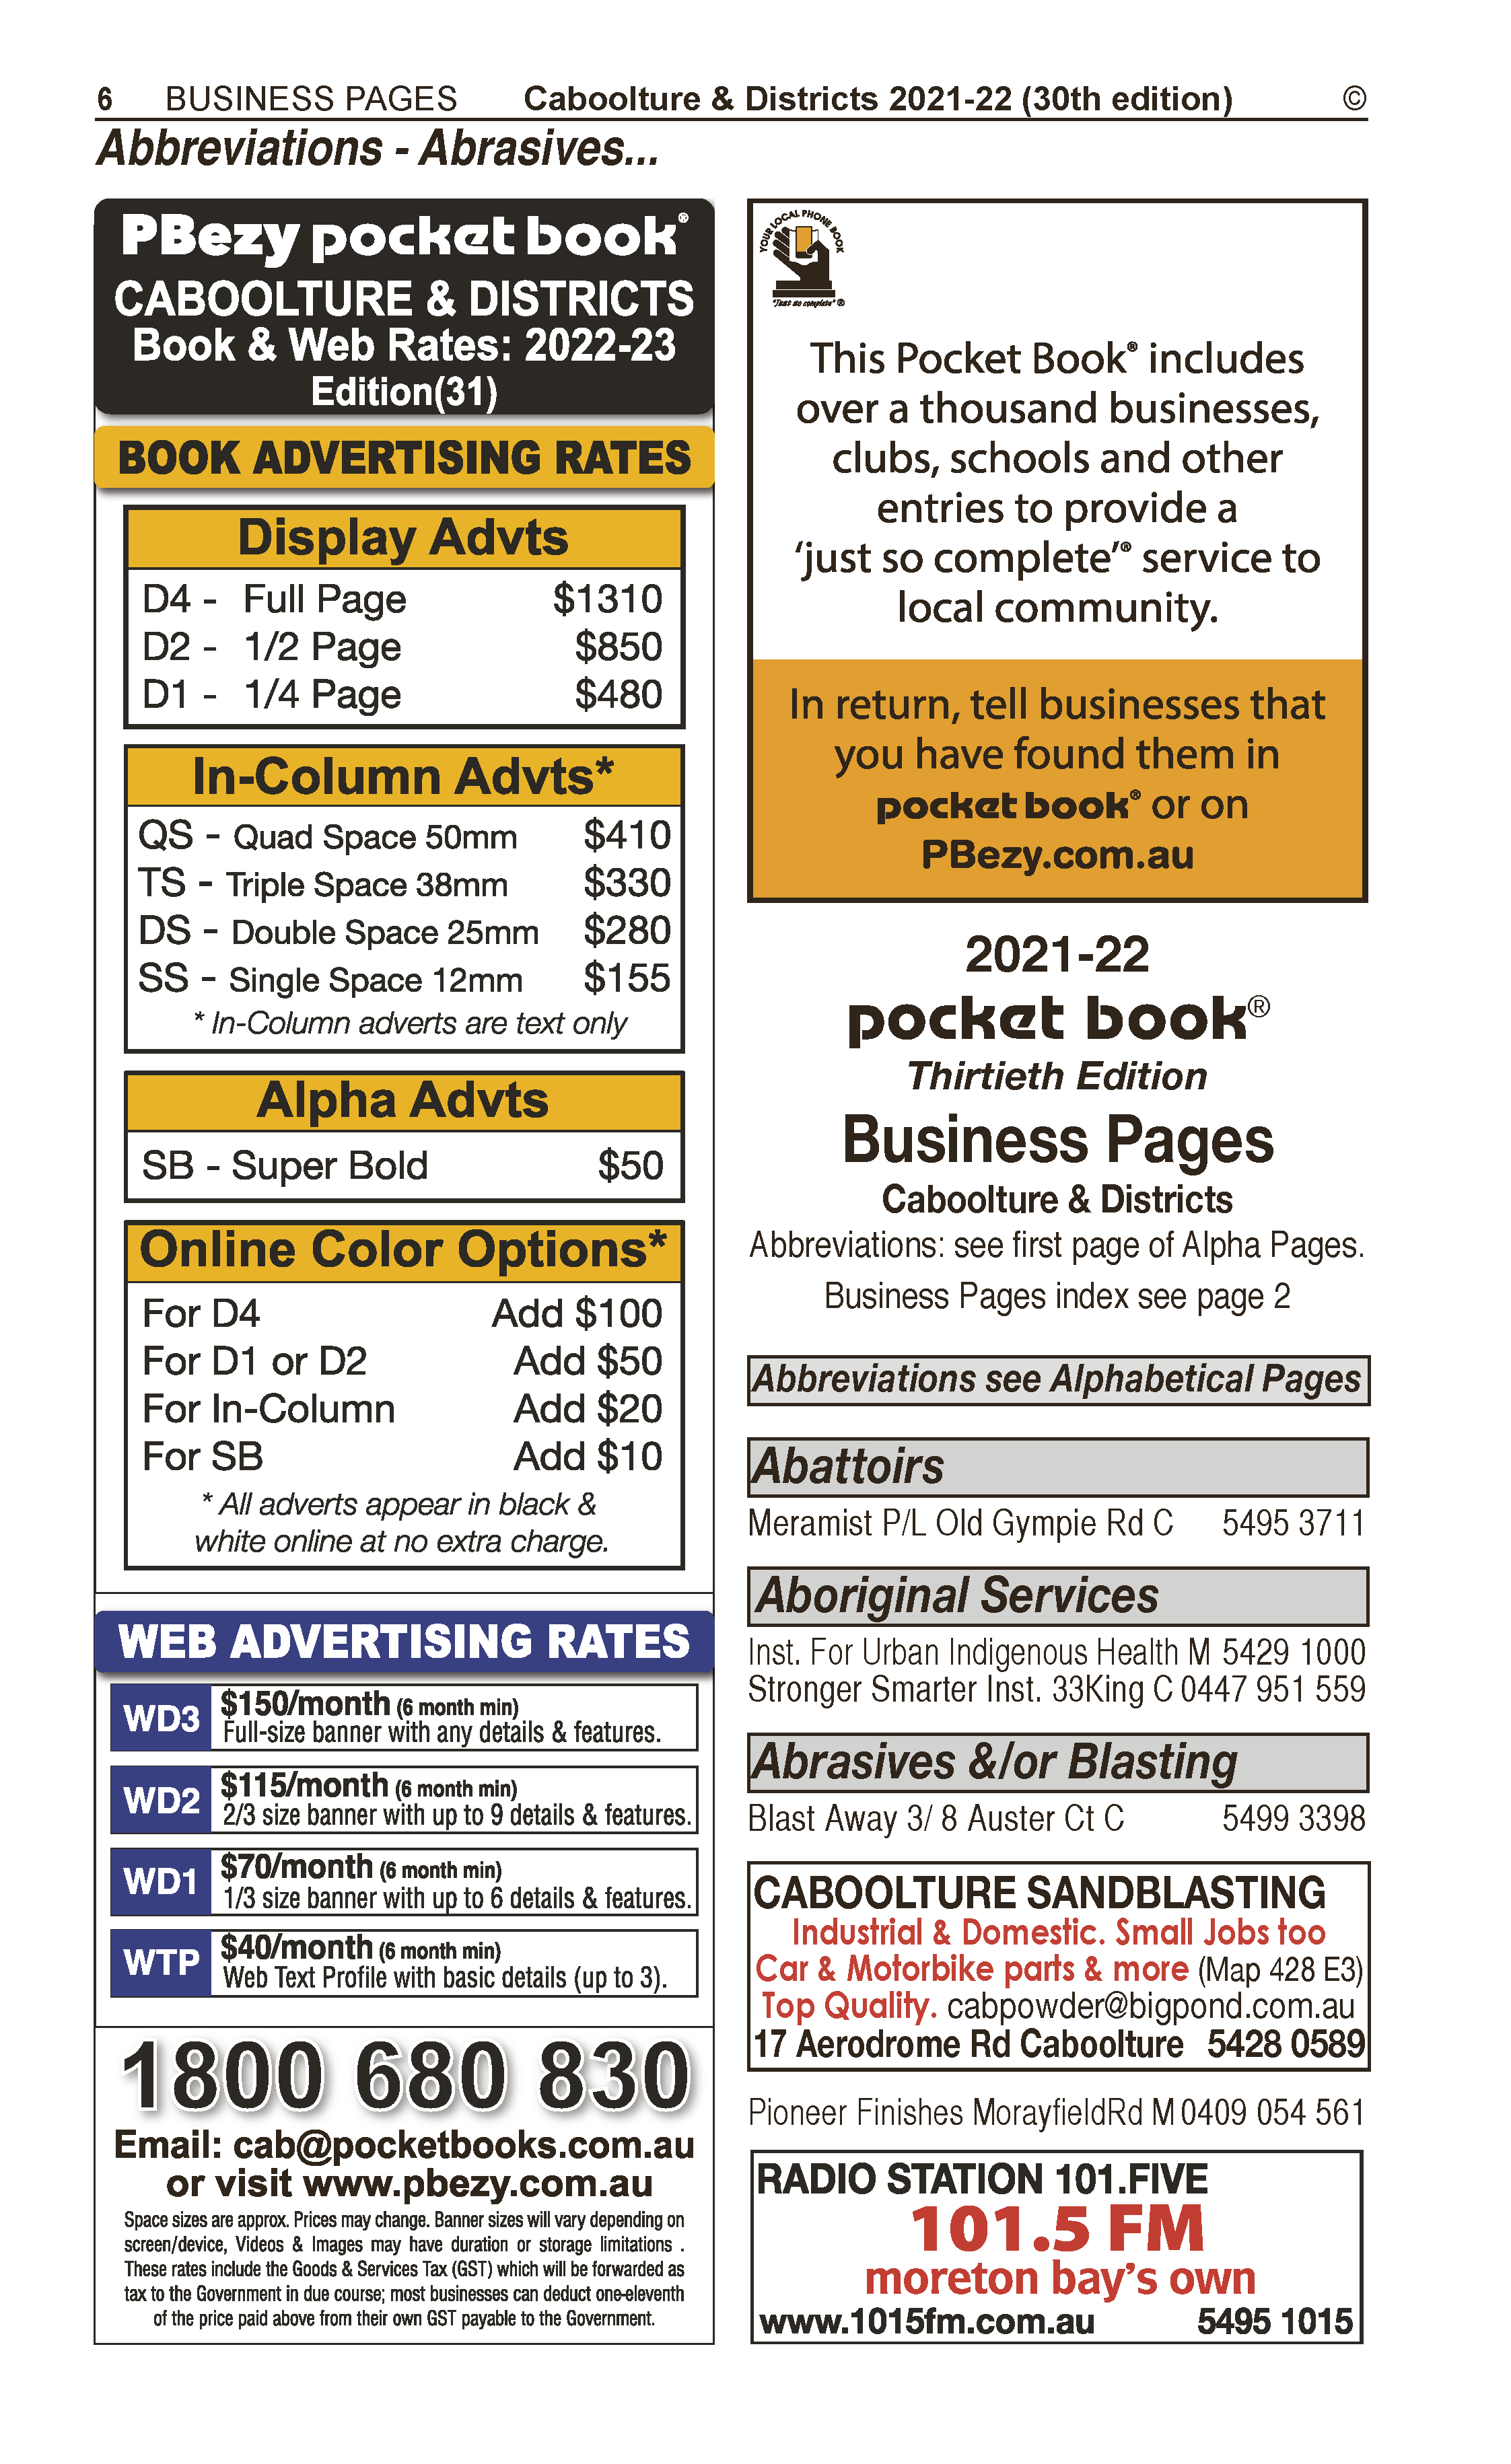 POCKET BOOKS | Advertising Agencies in Beerwah | PBezy Pocket Books local directories - page 6